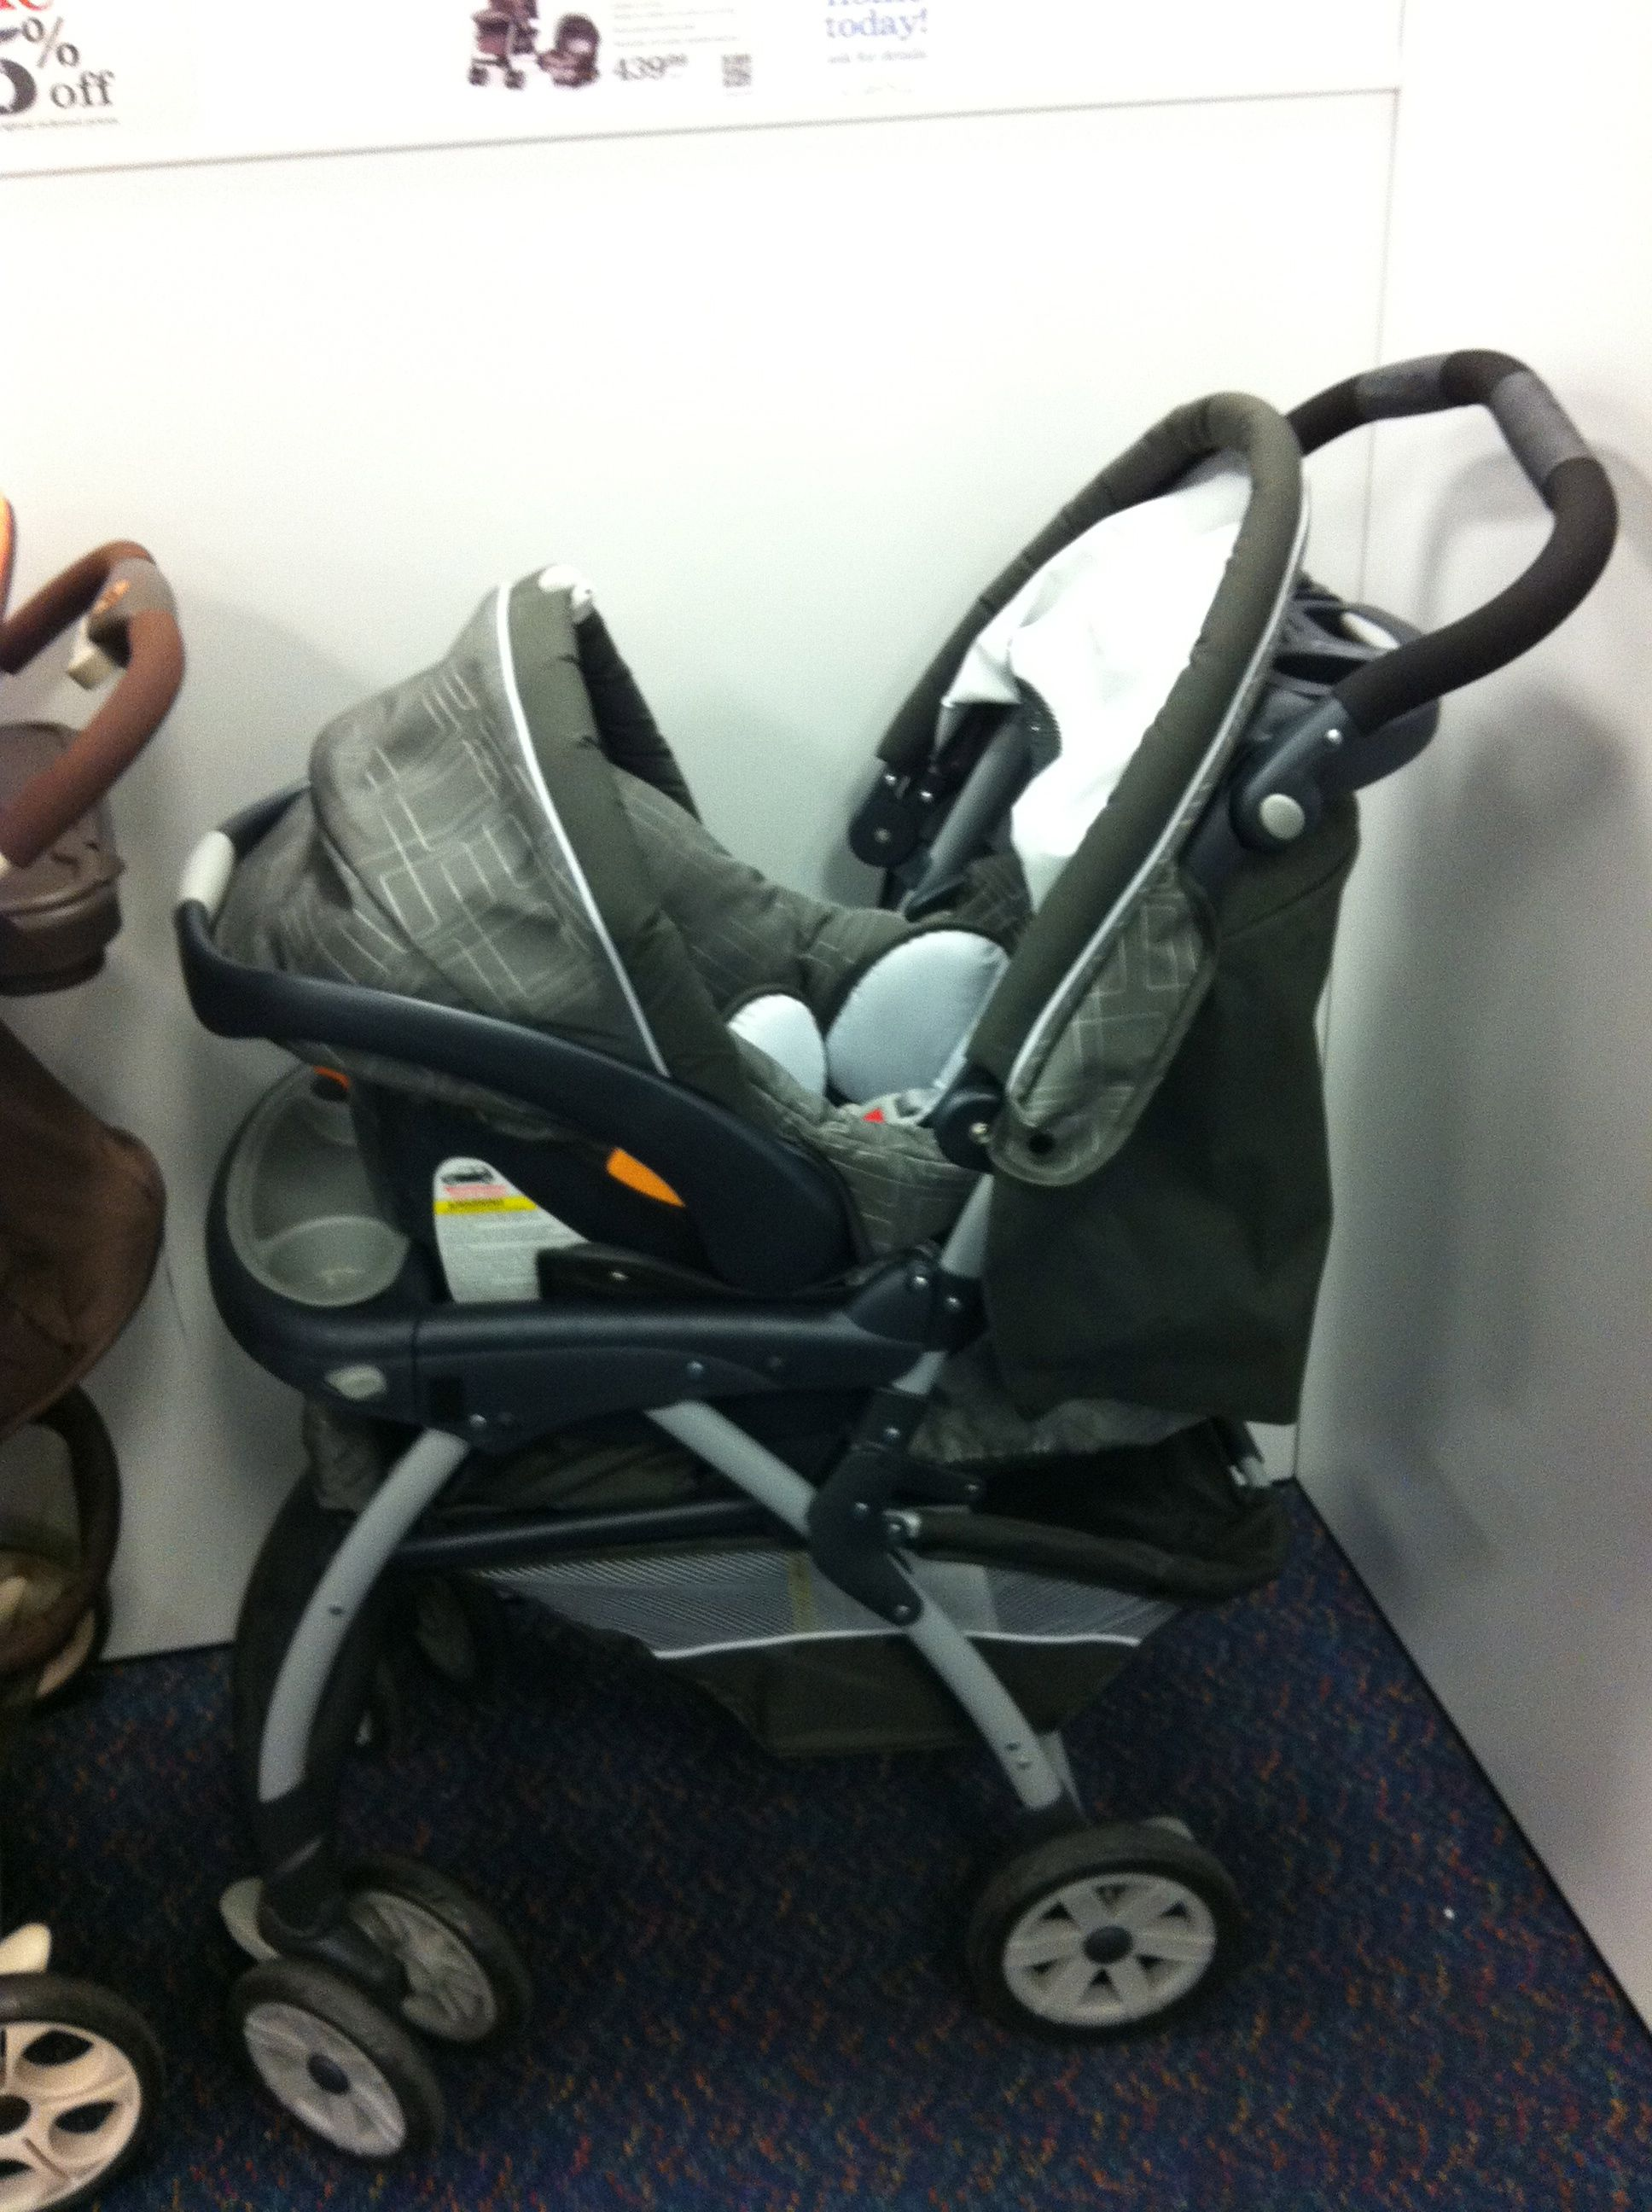 Chicco Travel system at Sears (we want a different pattern